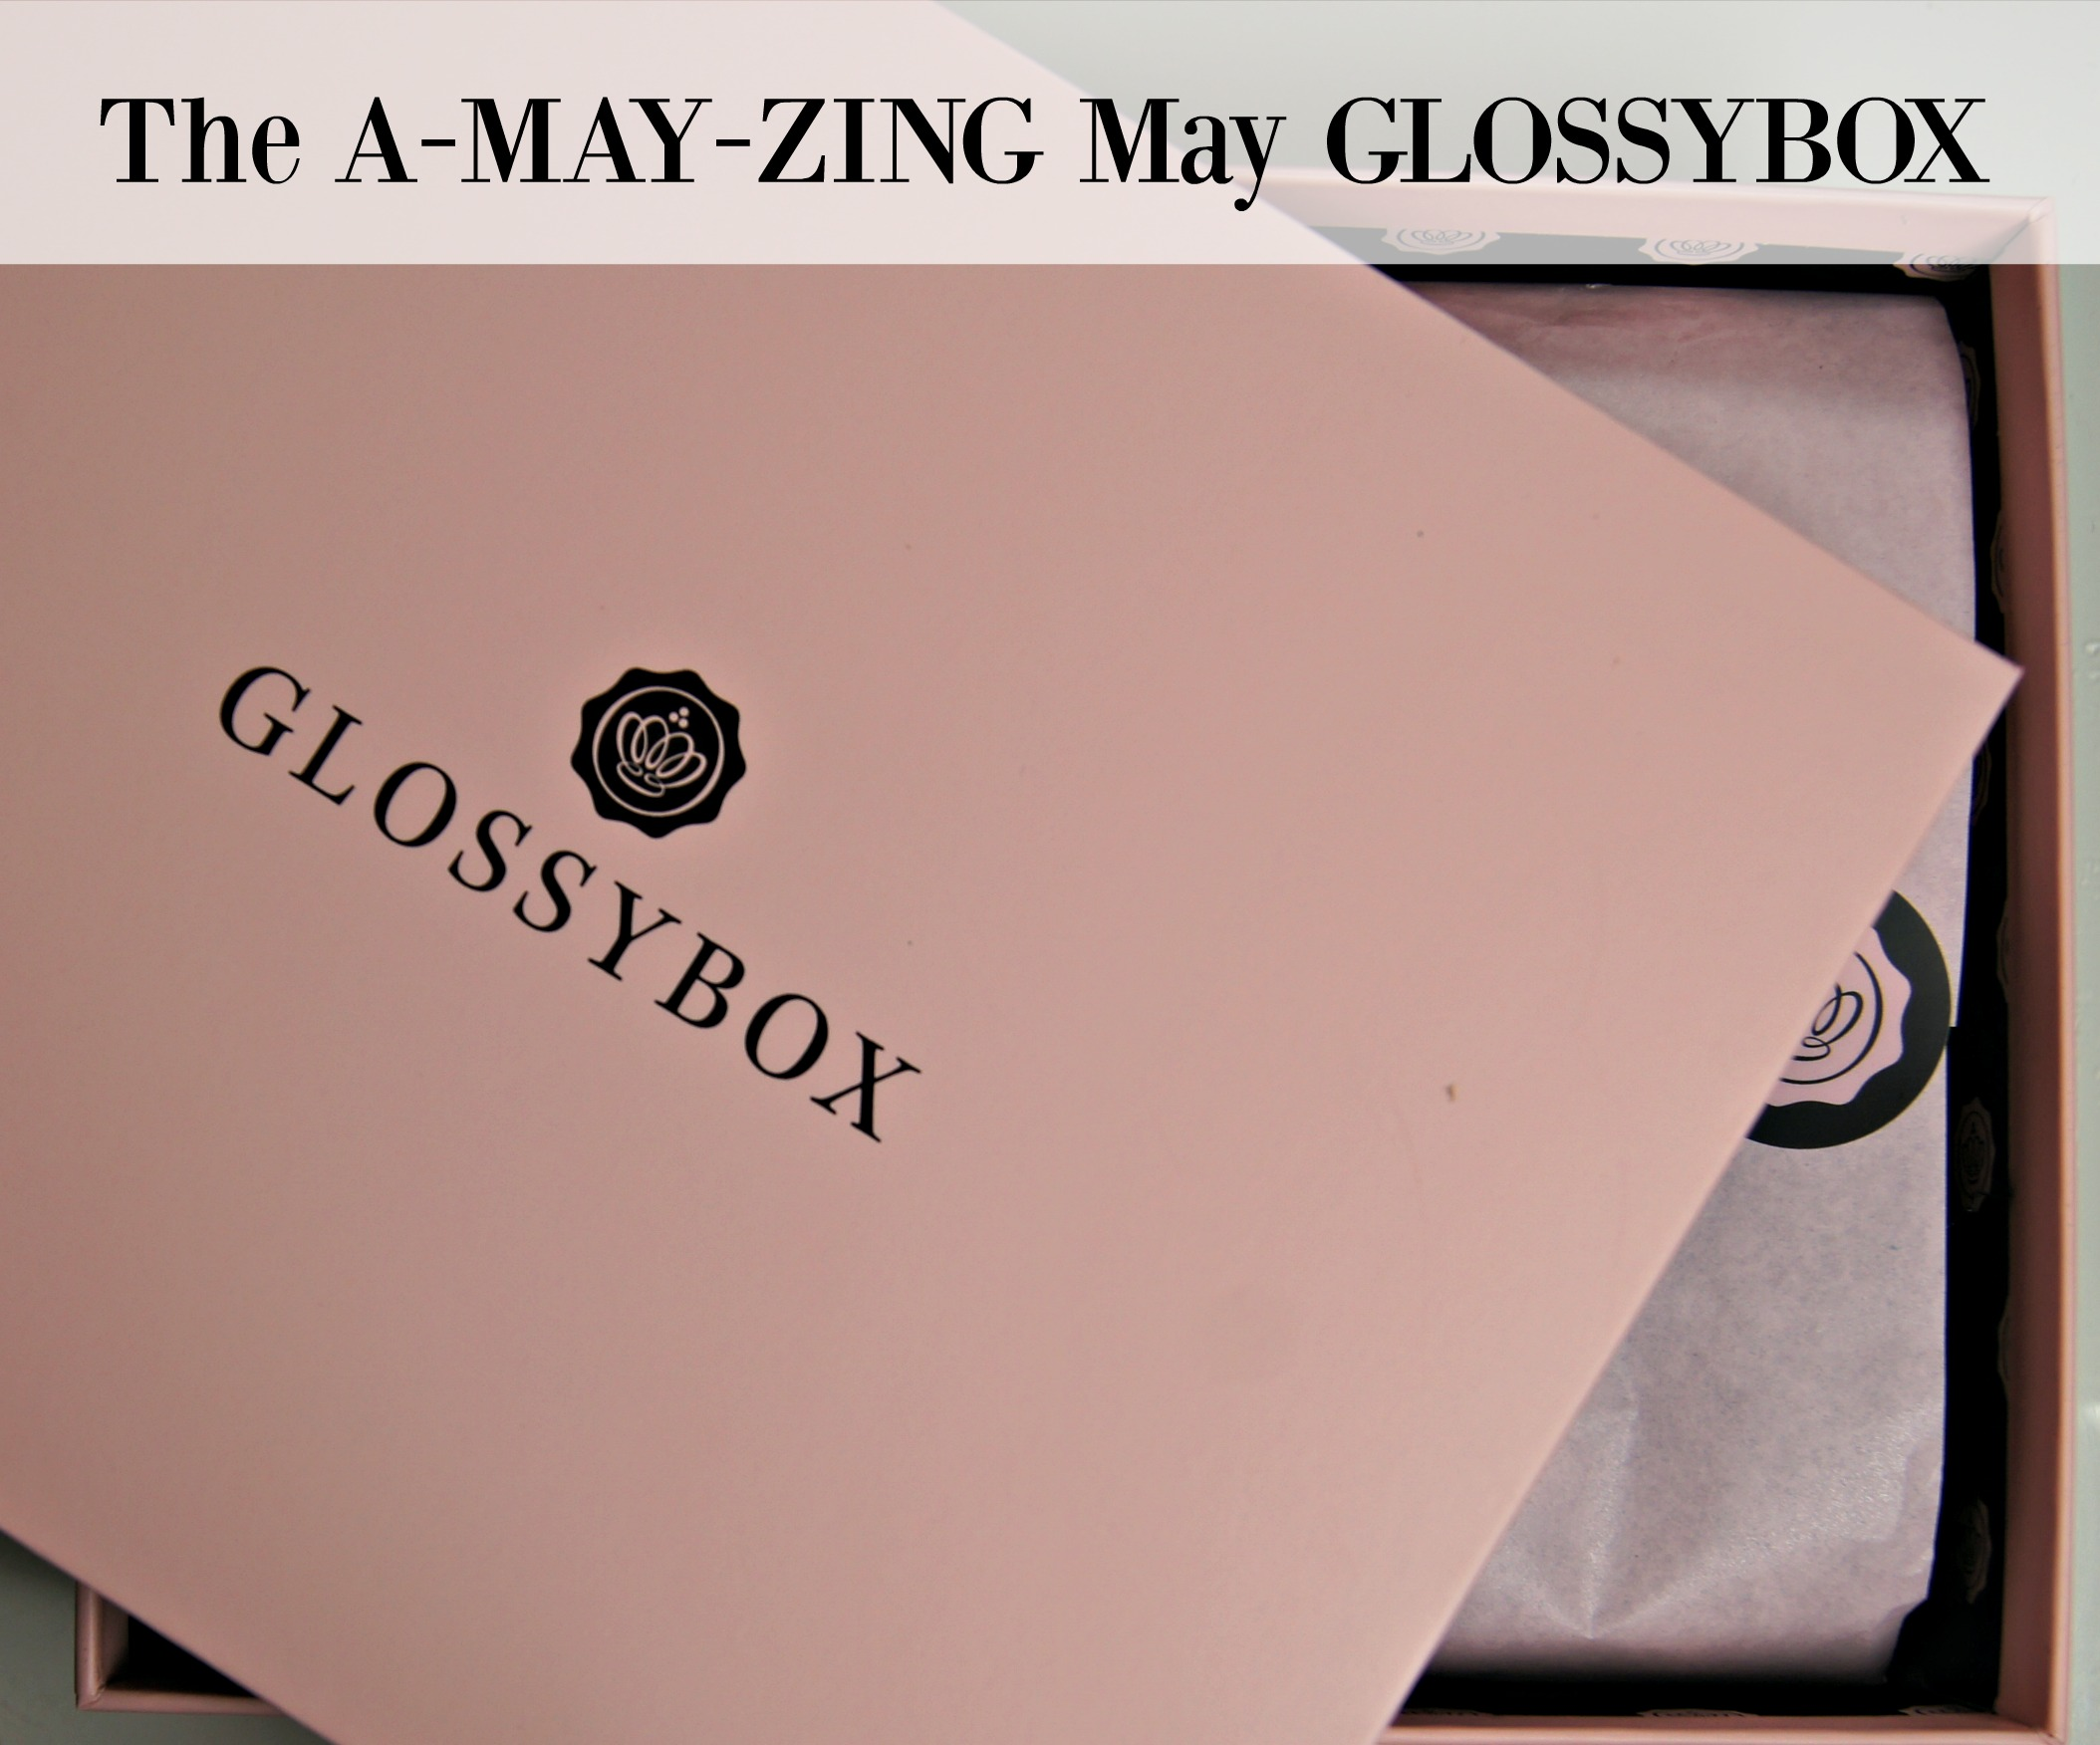 The A-MAY-ZING May GLOSSYBOX